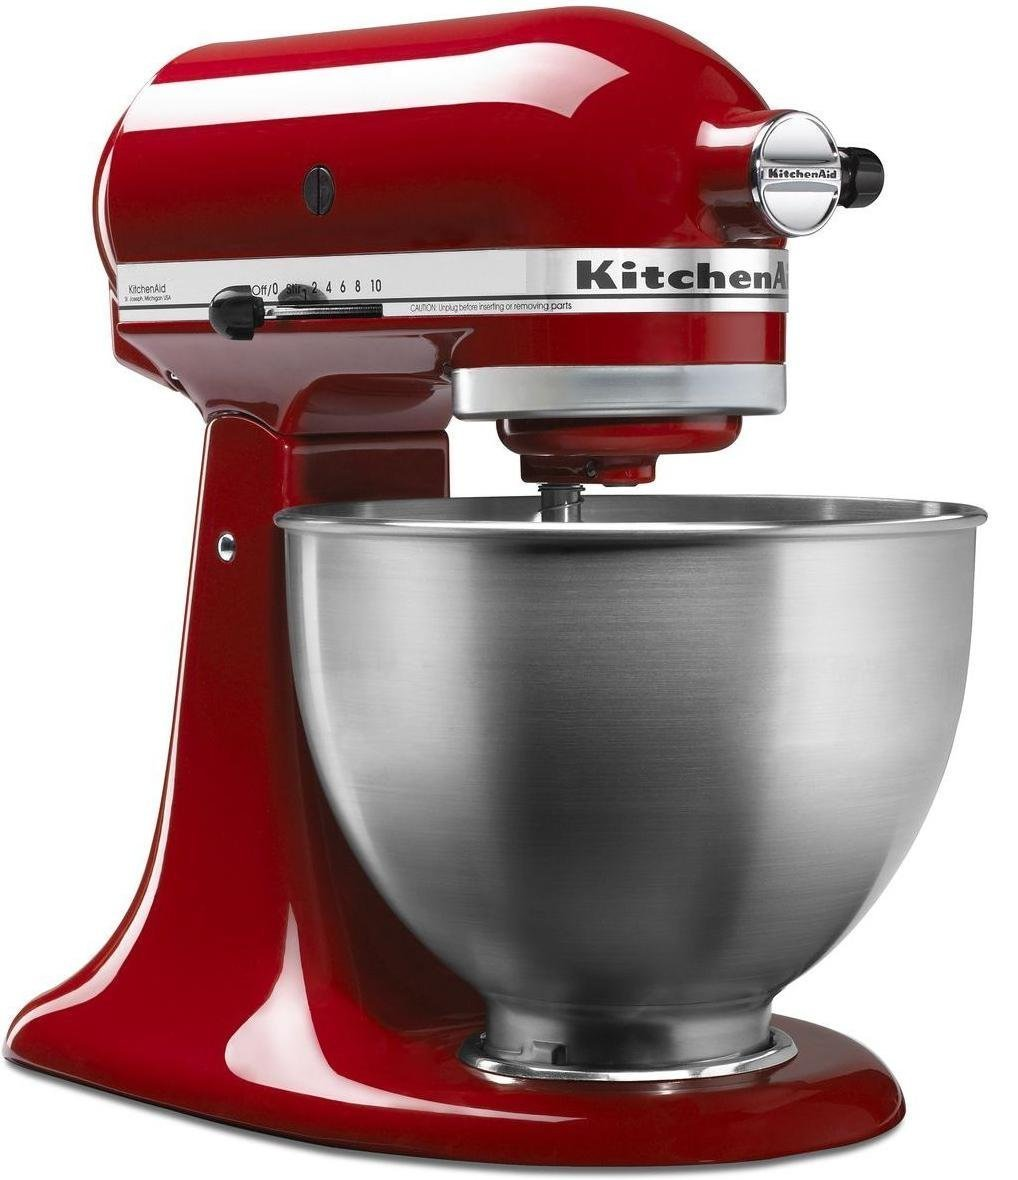 Attractive KitchenAid 4.5 Qt. Classic Red Stand Mixer